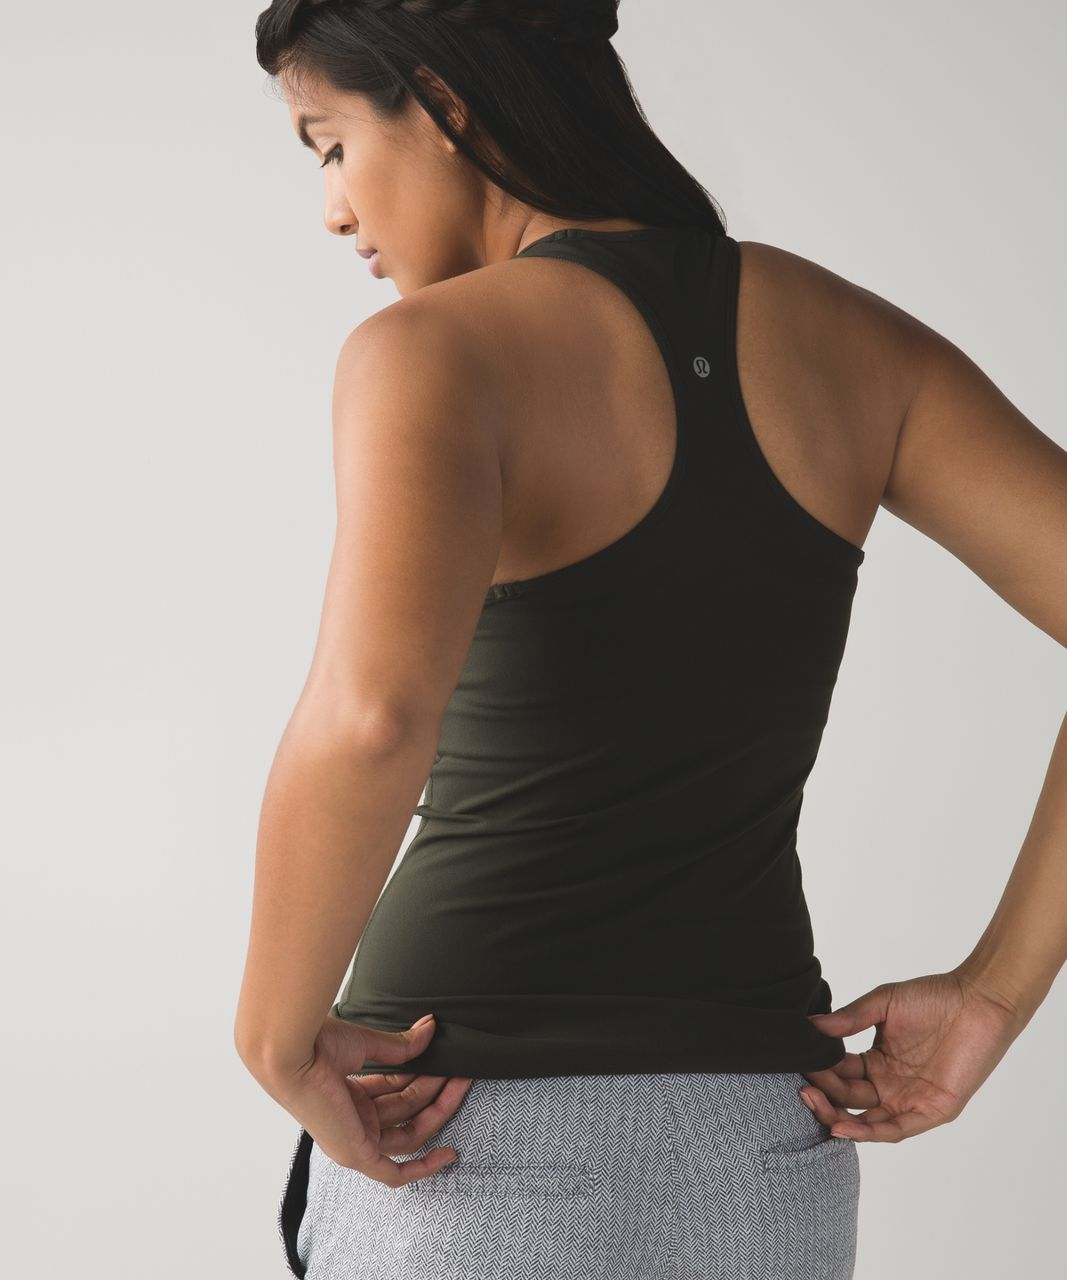 Lululemon Cool Racerback - Gator Green (First Release)